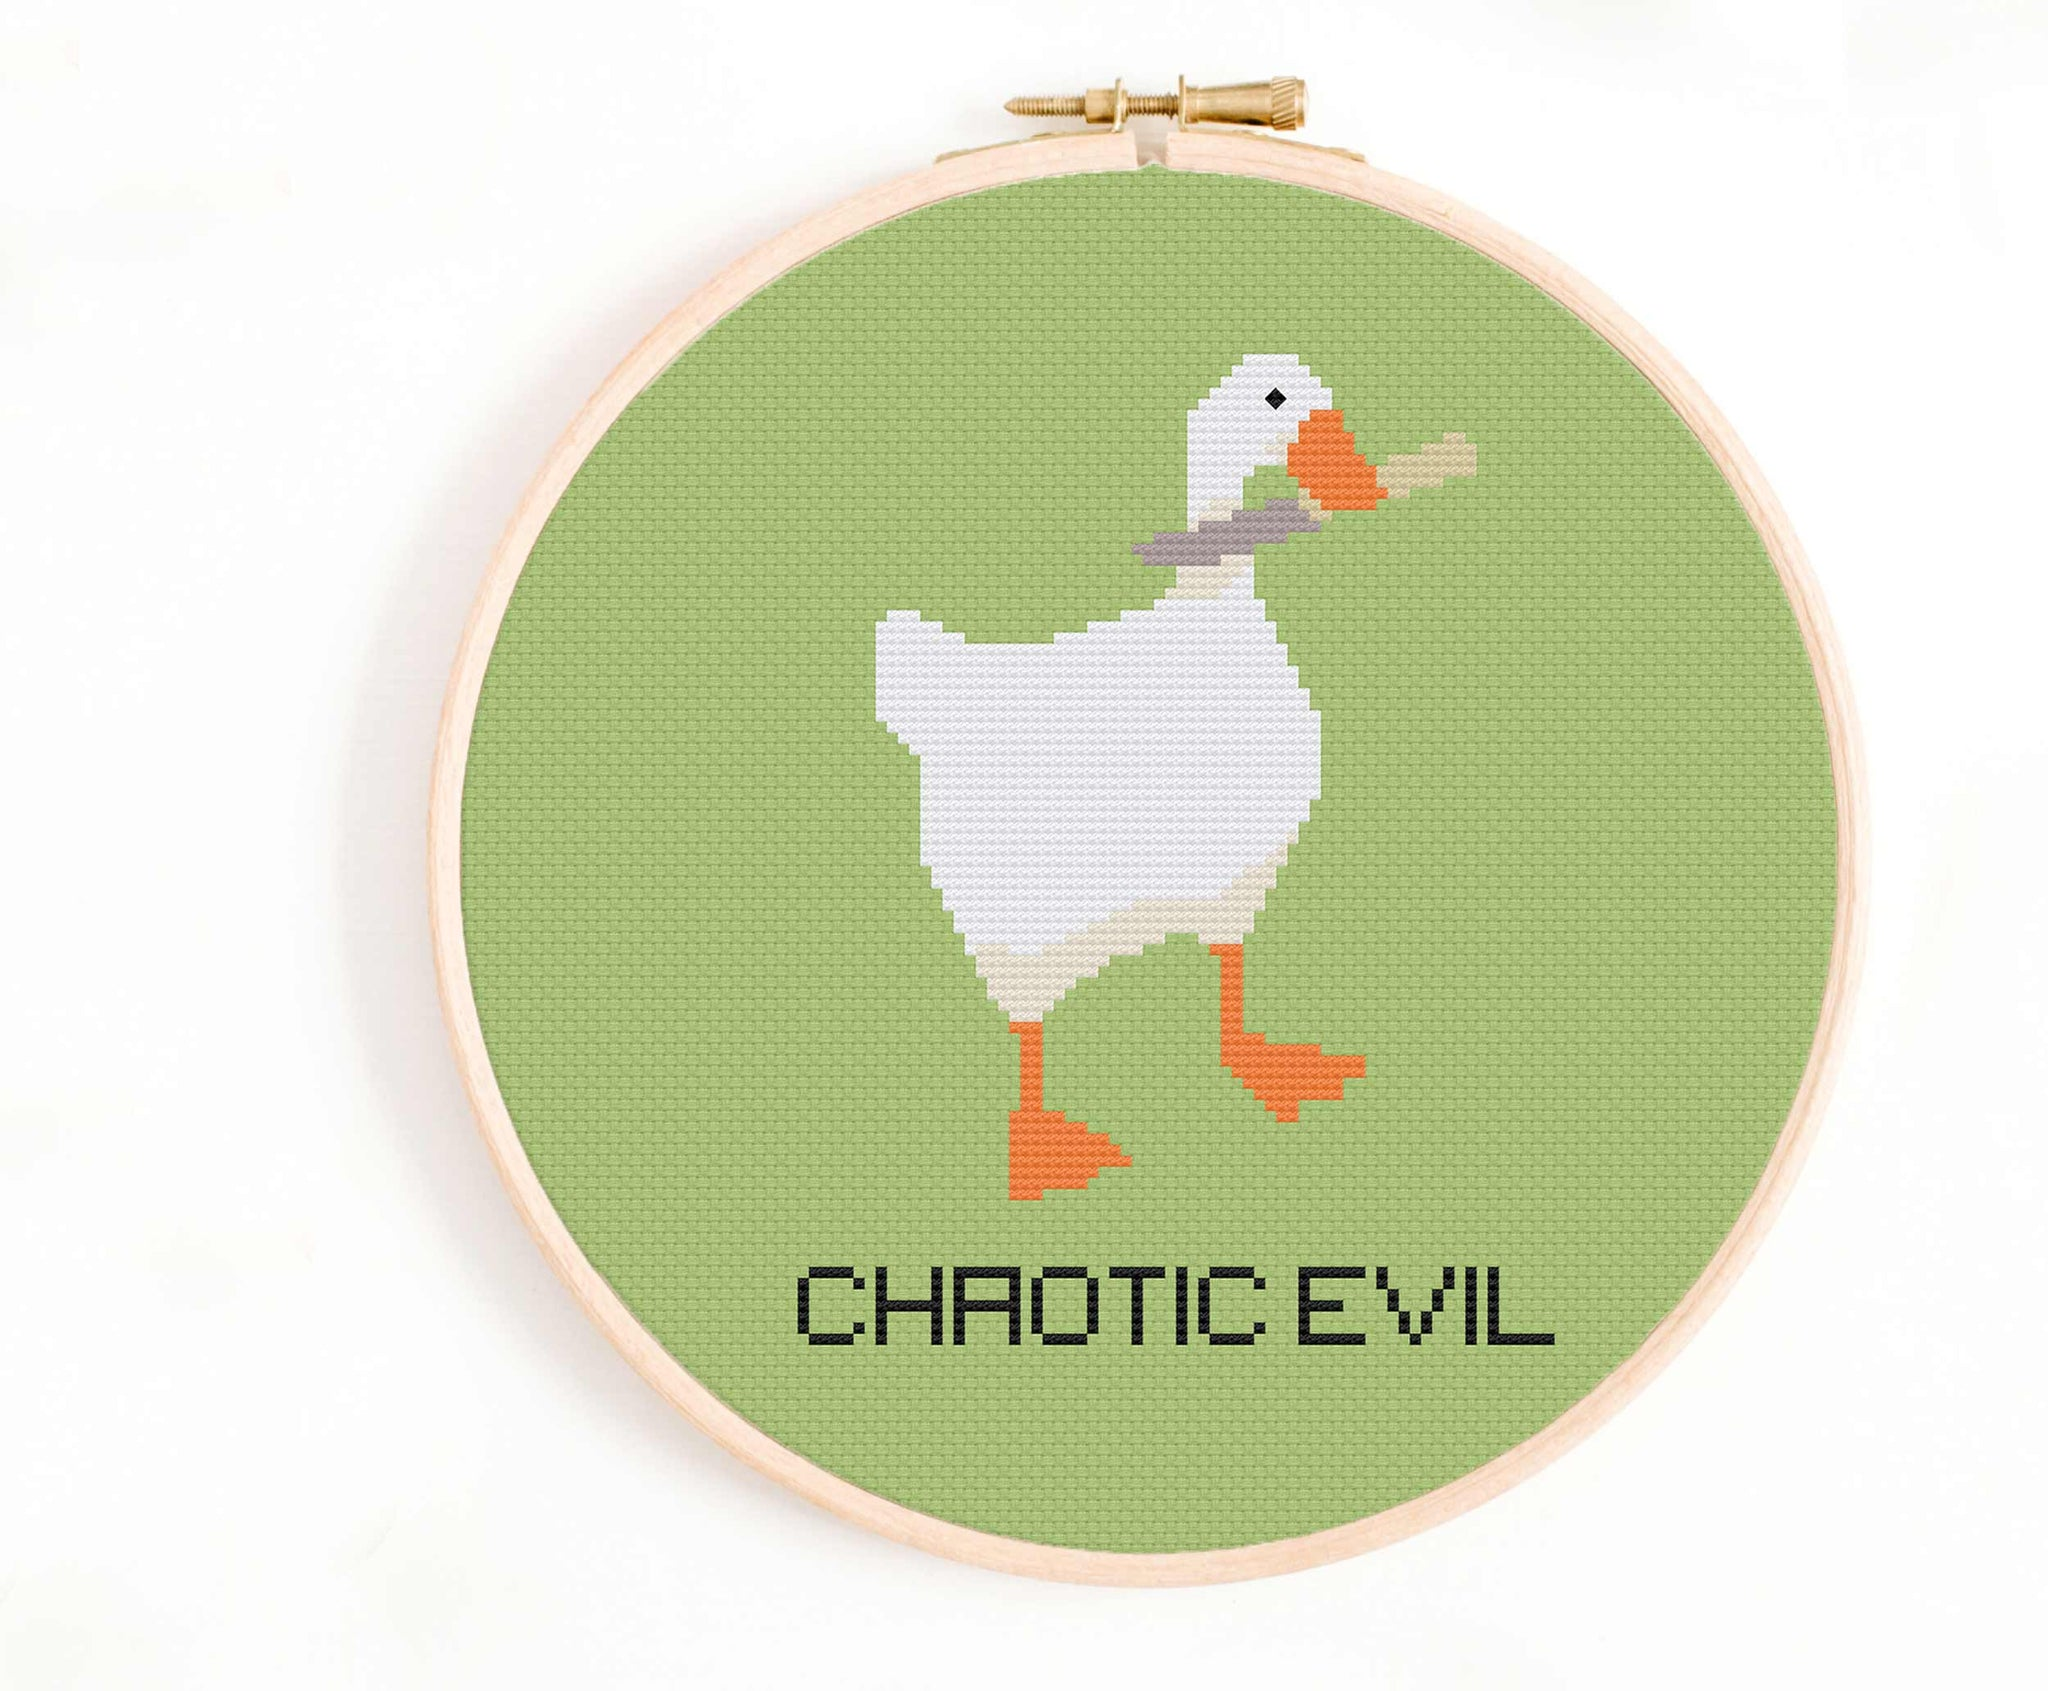 'Chaotic Evil' Untitled Goose Game Cross Stitch Pattern